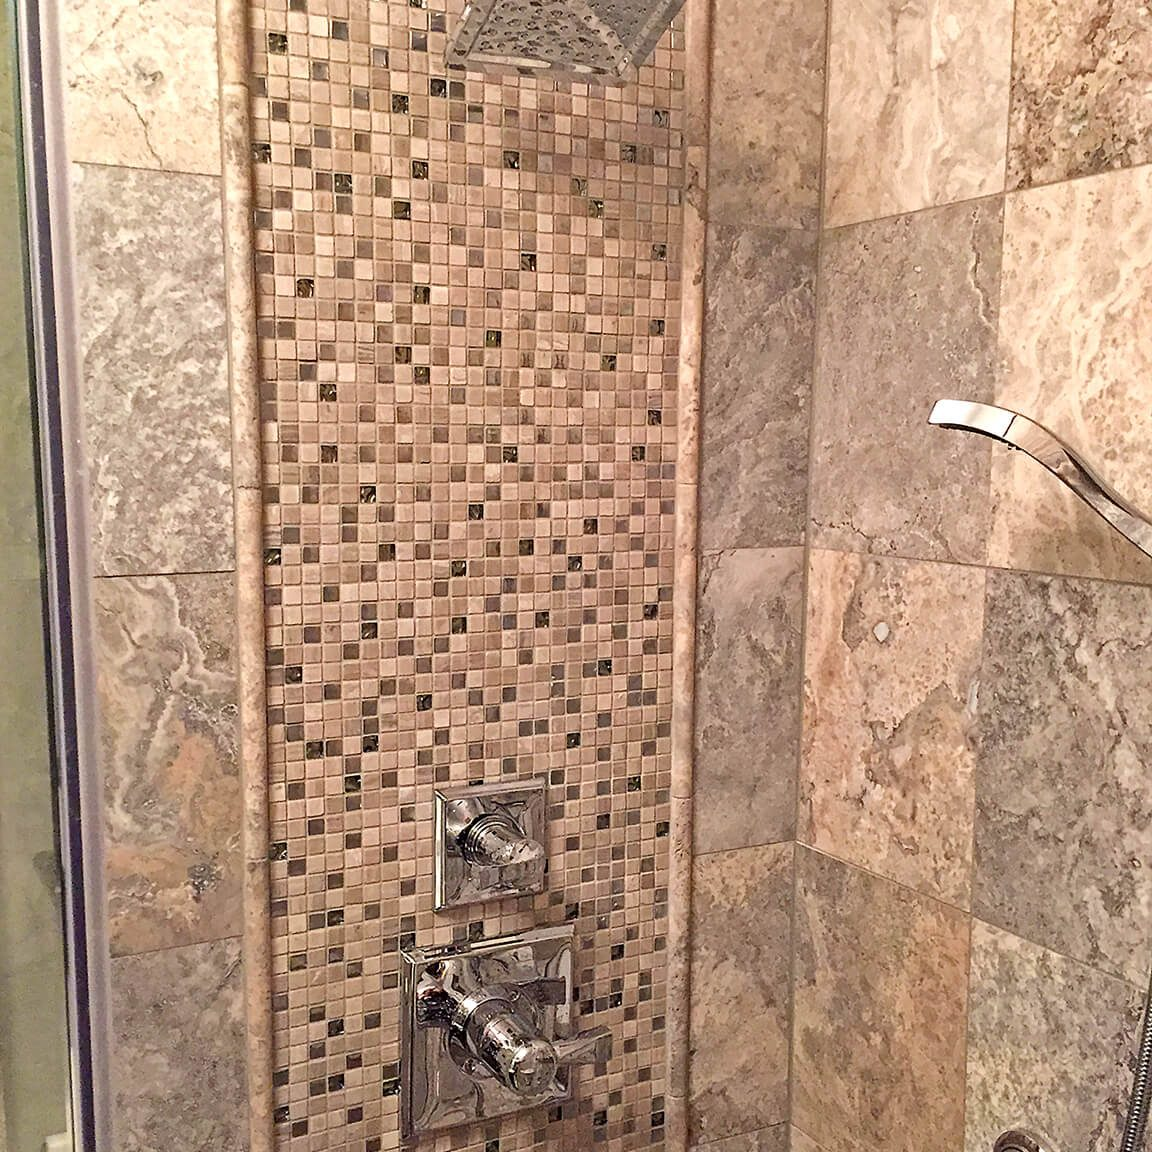 Kinetic Kitchen and Bath Our Work Gallery Photo - Bathroom remodel design photo of tile and shower details